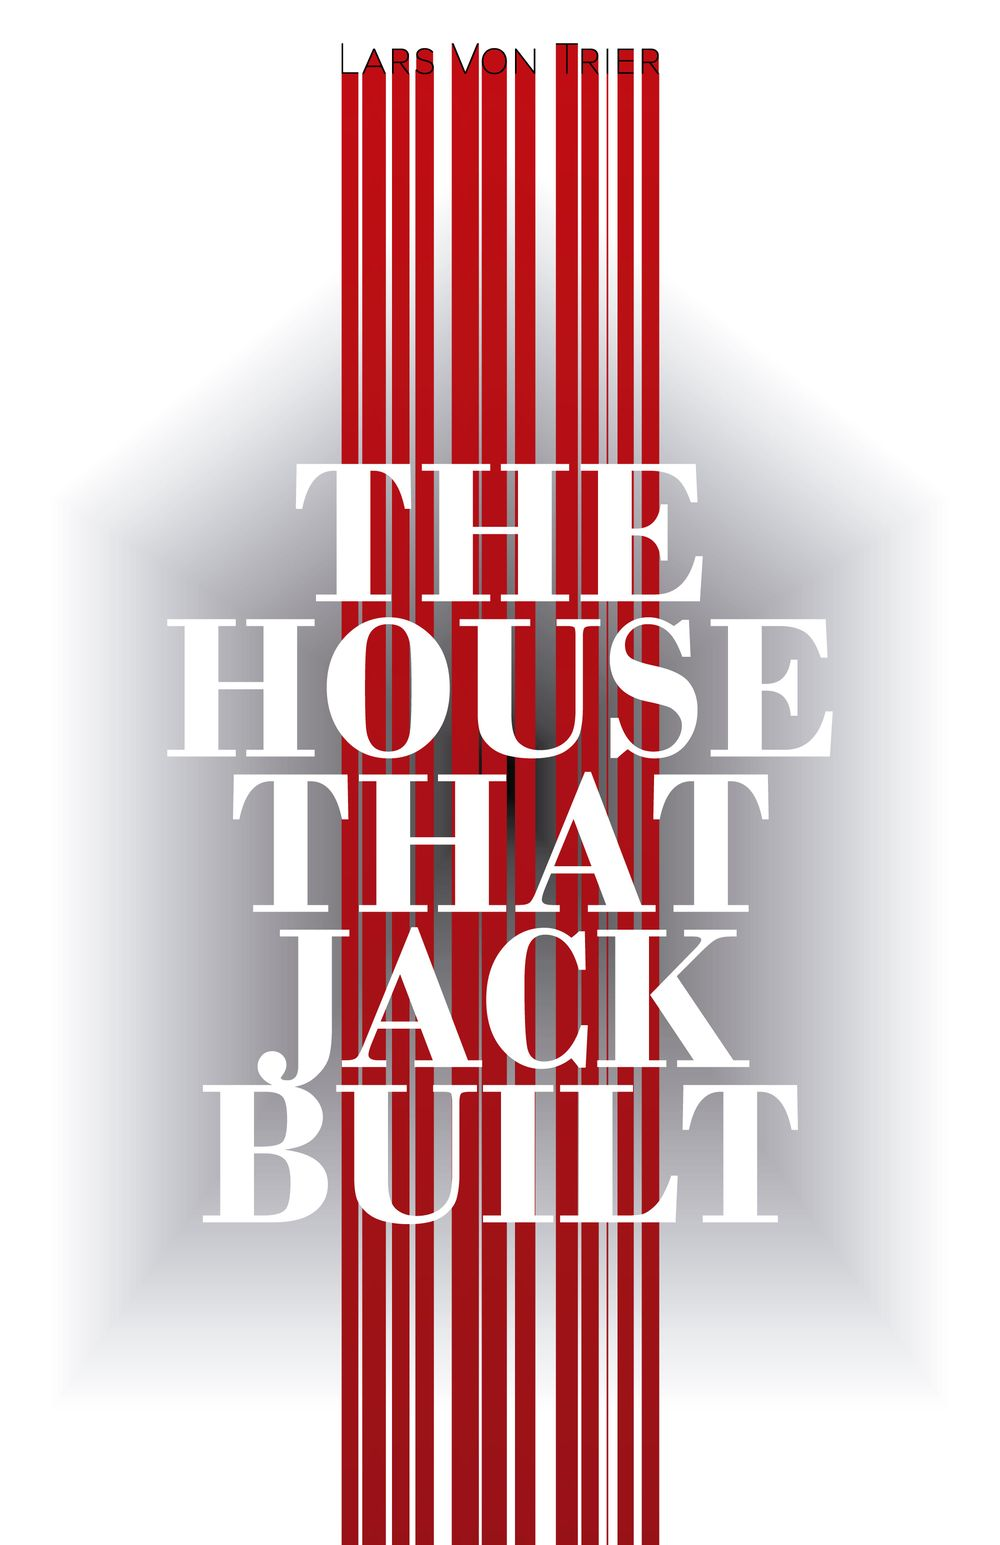 The House That Jack Built - image 4 - student project